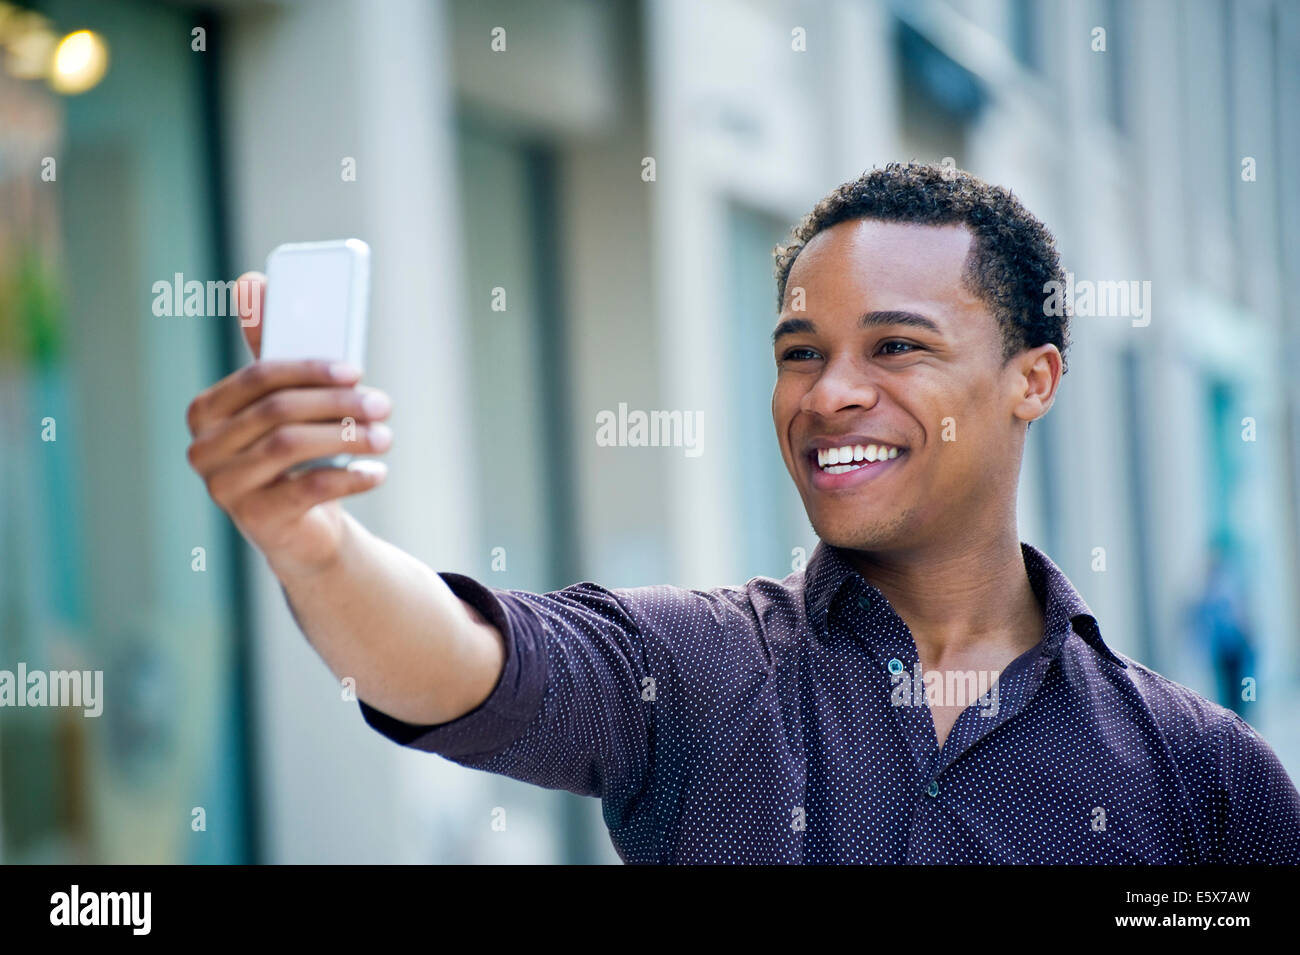 Young man taking smartphone selfie on city street - Stock Image